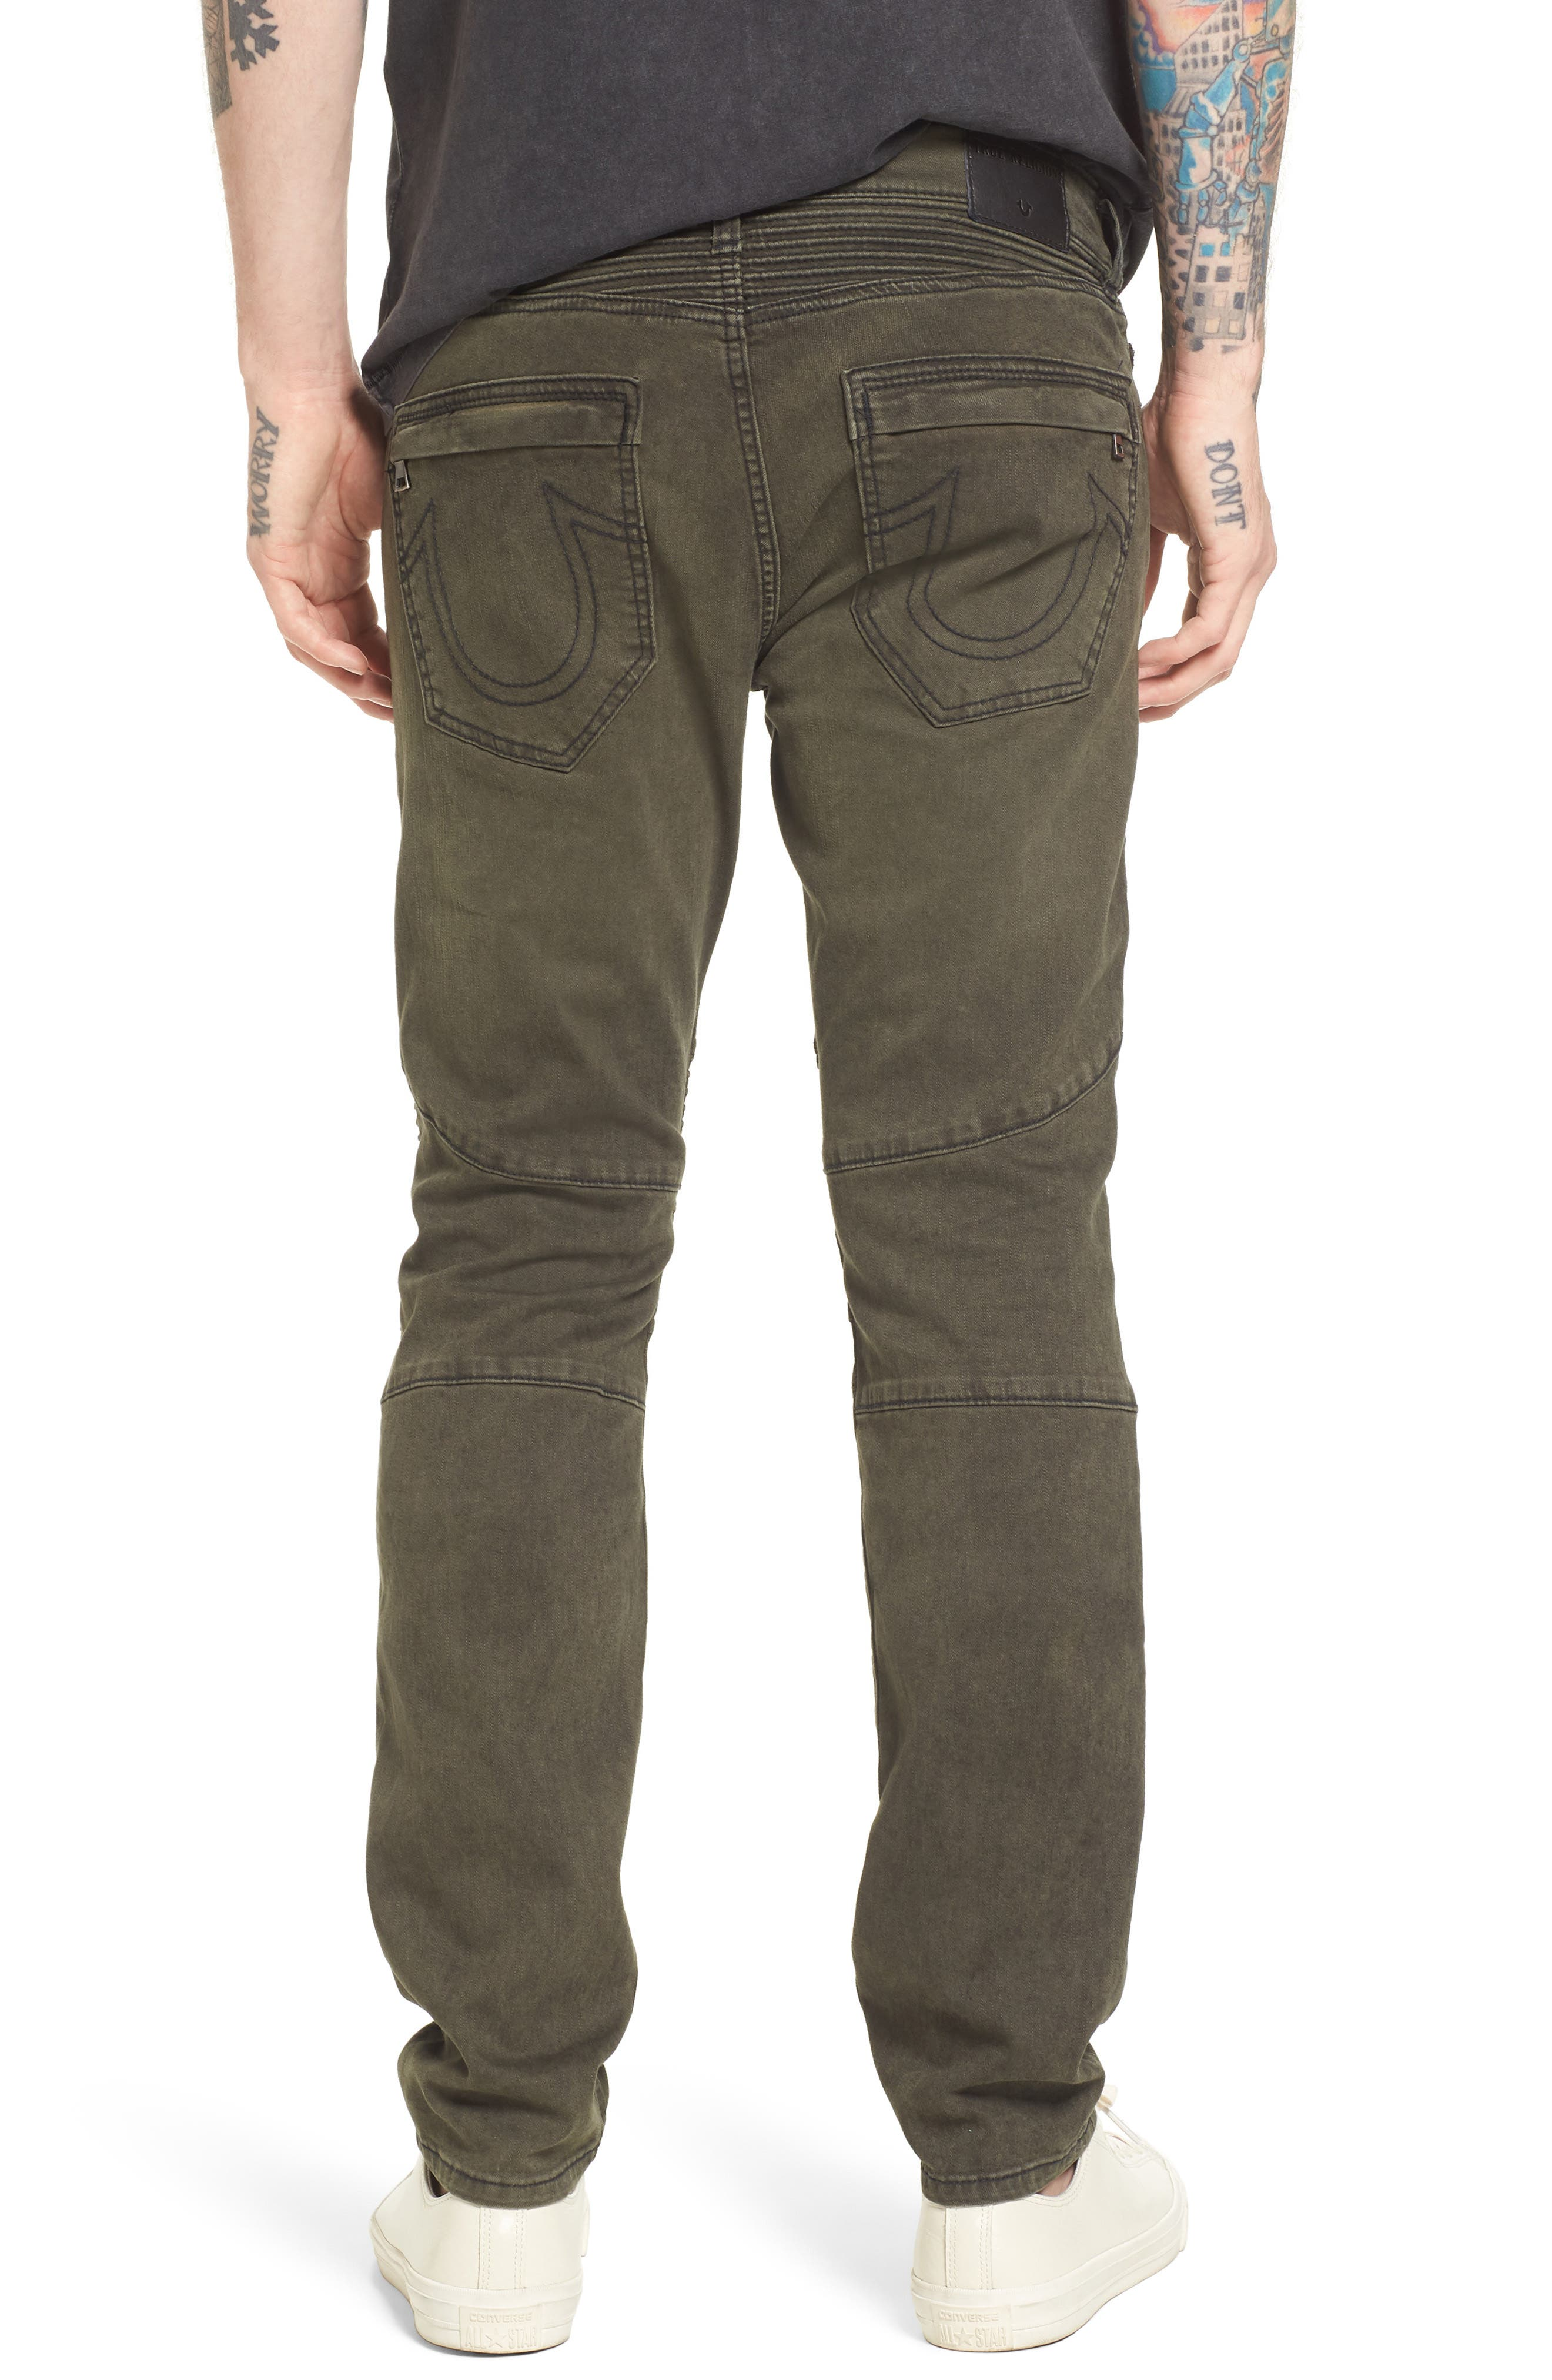 Rocco Skinny Fit Jeans,                             Alternate thumbnail 2, color,